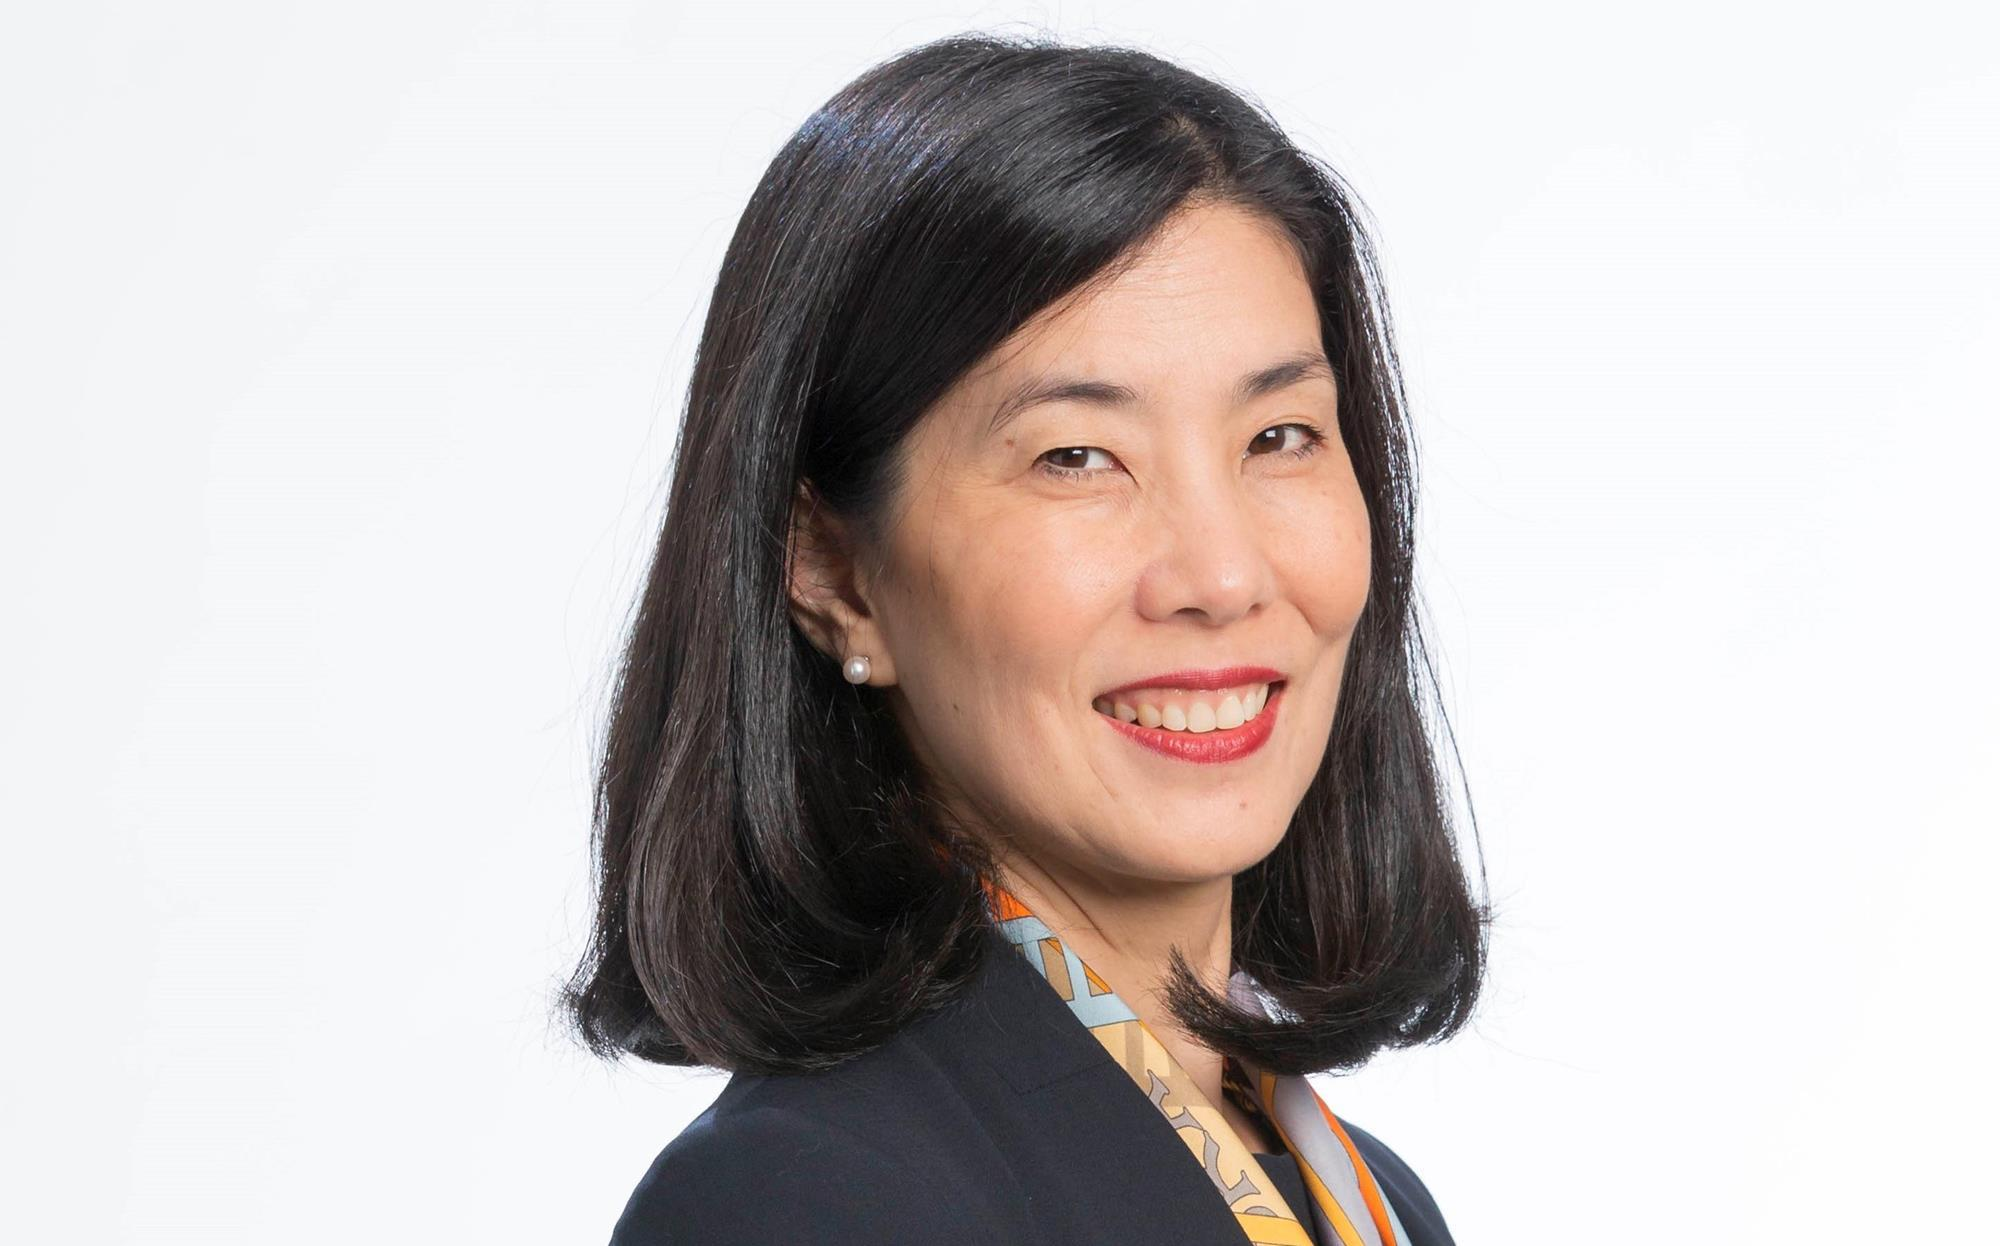 CPP Investments names Deborah Orida head of real assets | News | Real Assets